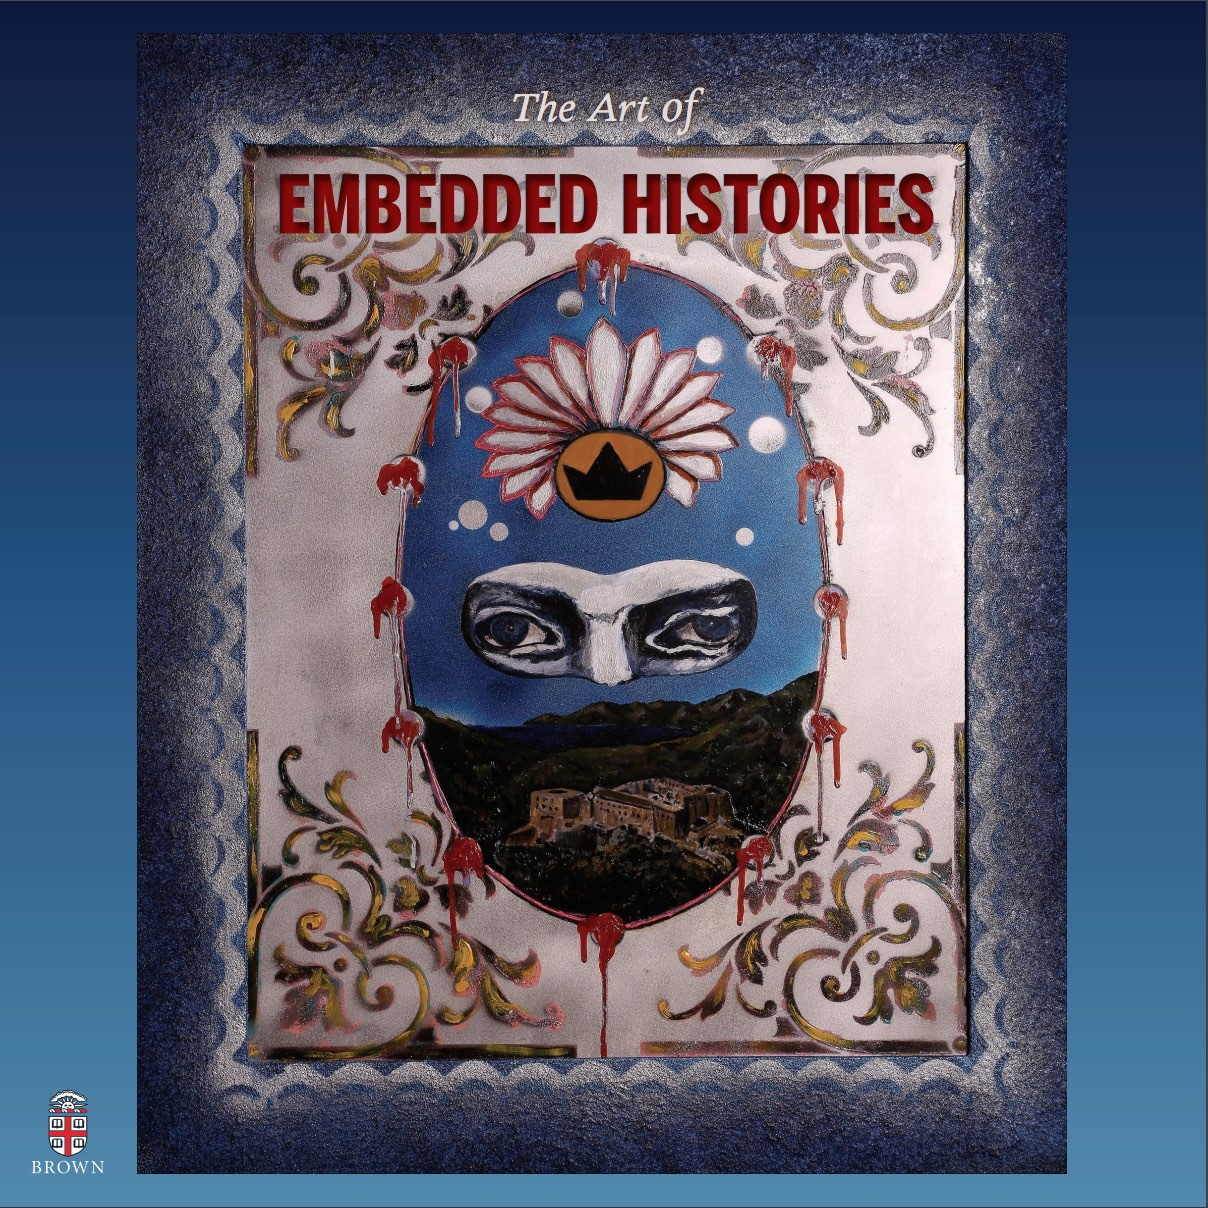 The Art of Embedded Histories